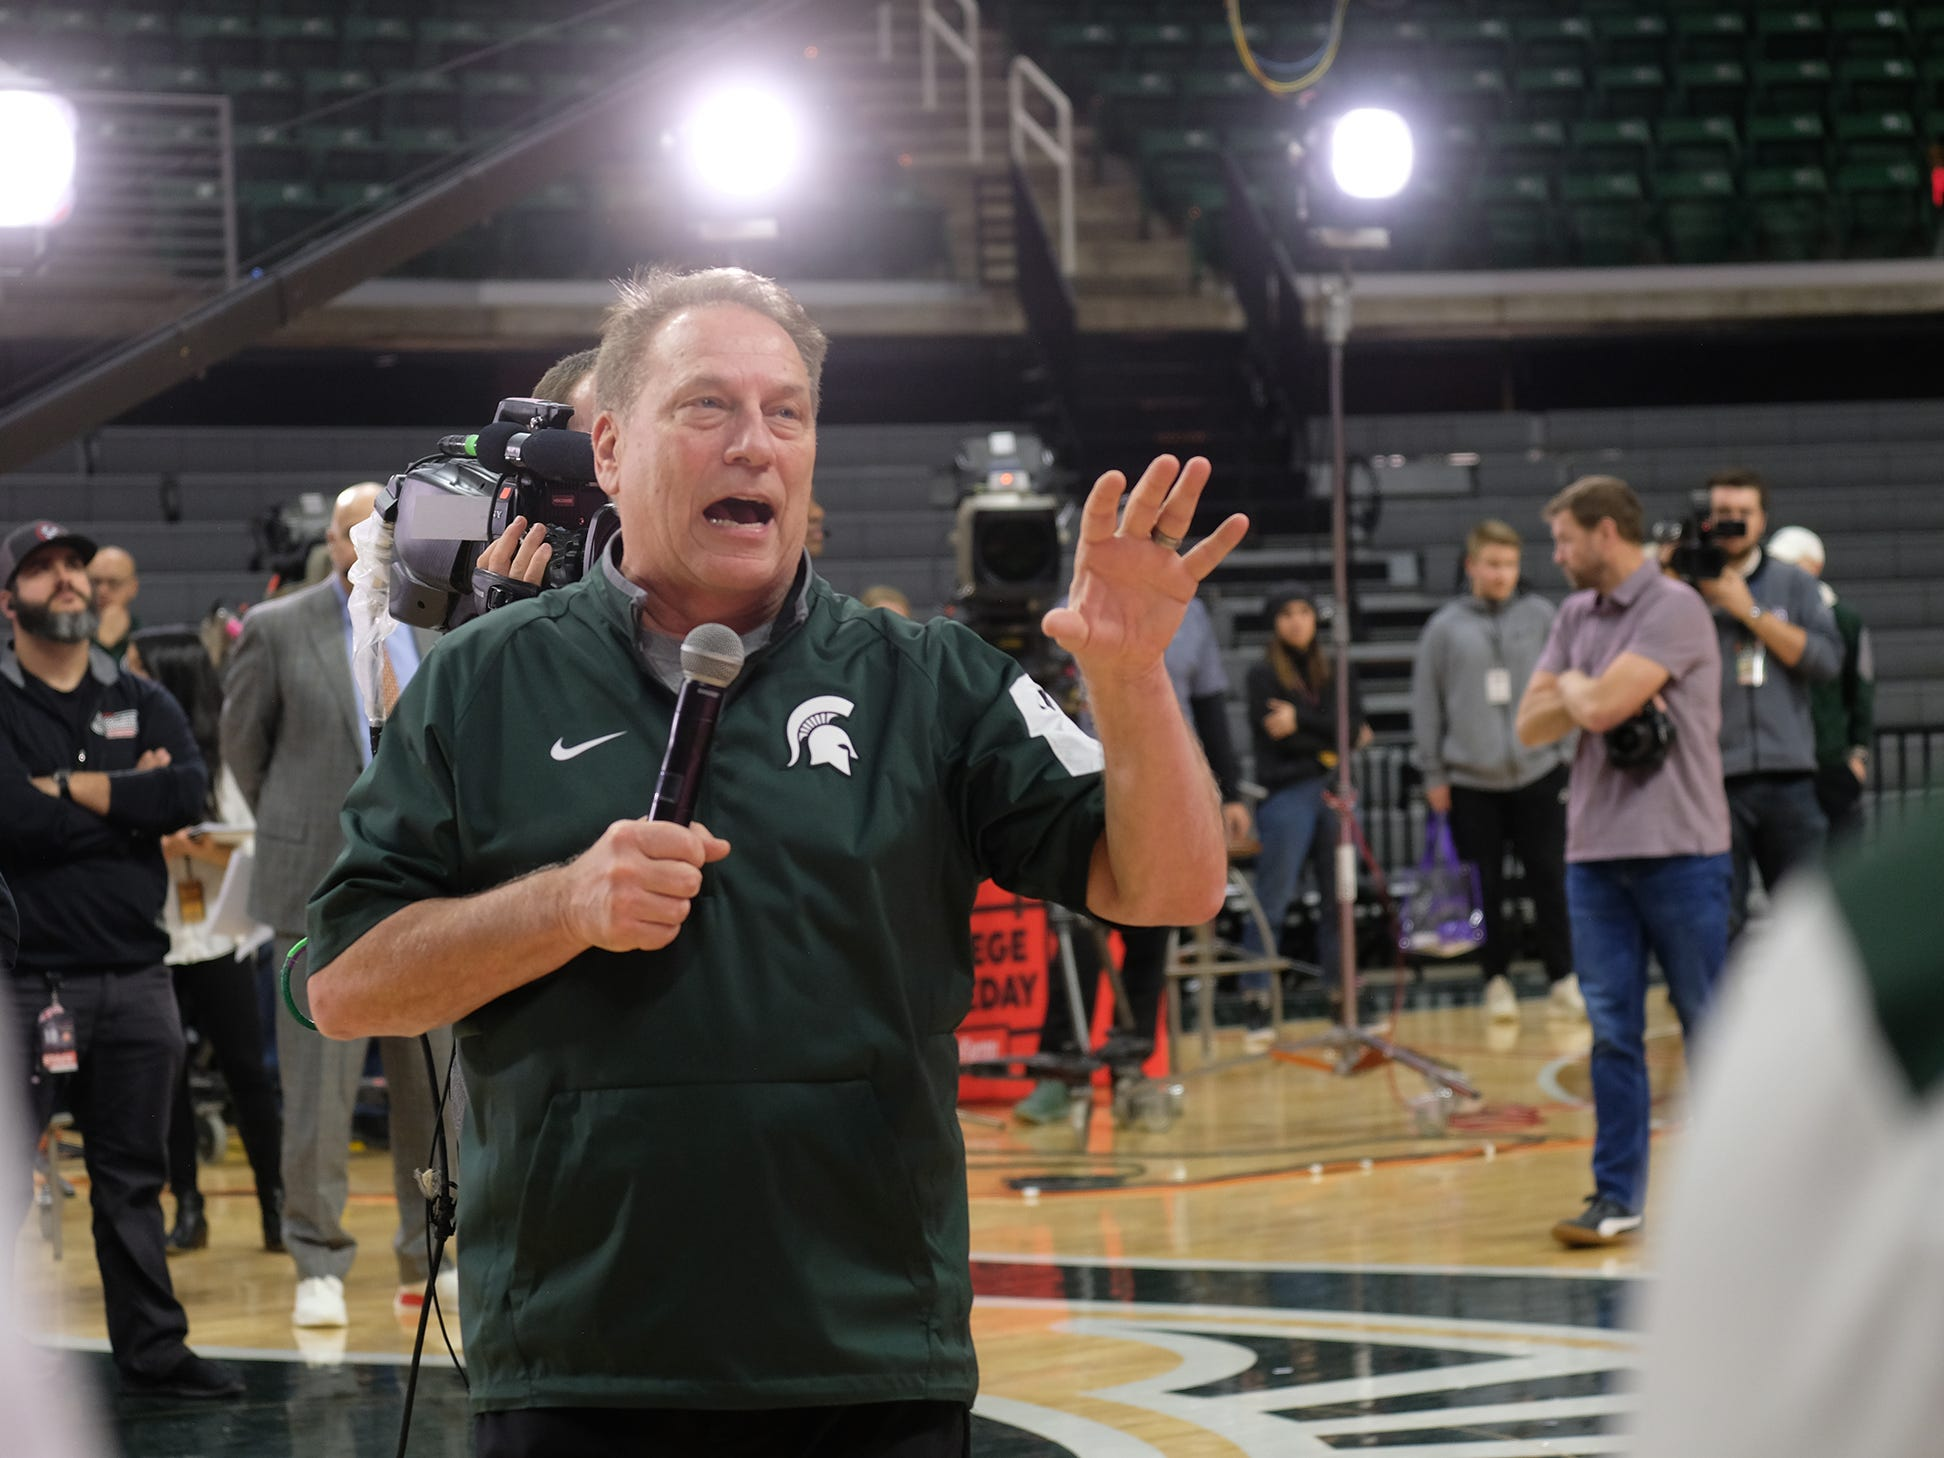 Head MSU Basketball Coach Tom Izzo speaks to the audience at the Breslin Center during the ESPN College GameDay broadcast Saturday, Feb. 2, 2019.